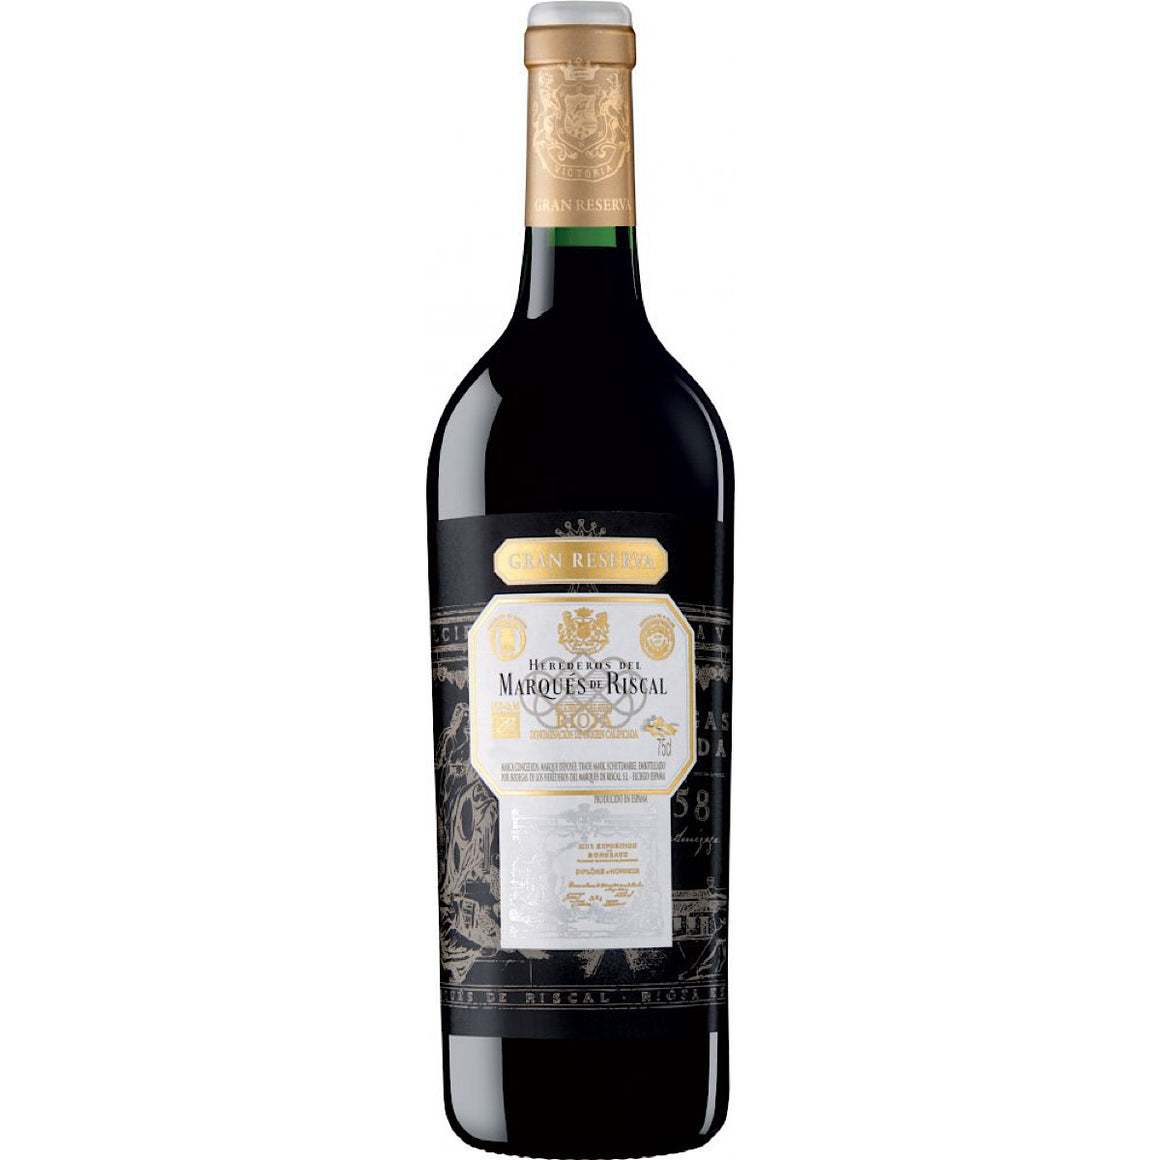 Marques de Riscal Gran Reserva Rioja 6 Bottle Case 2013